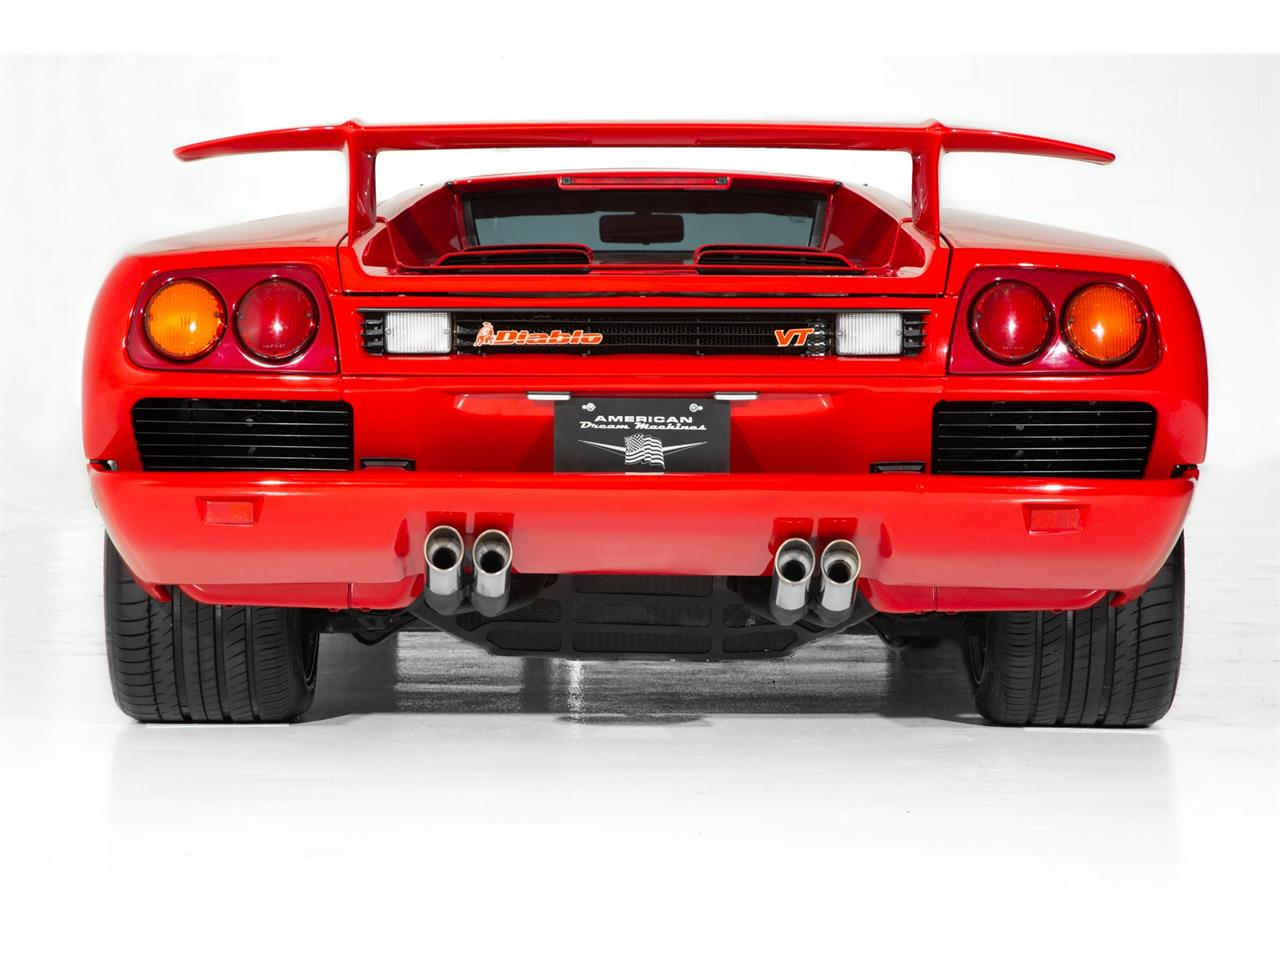 1995 Lamborghini Diablo for sale in Des Moines, IA – photo 4